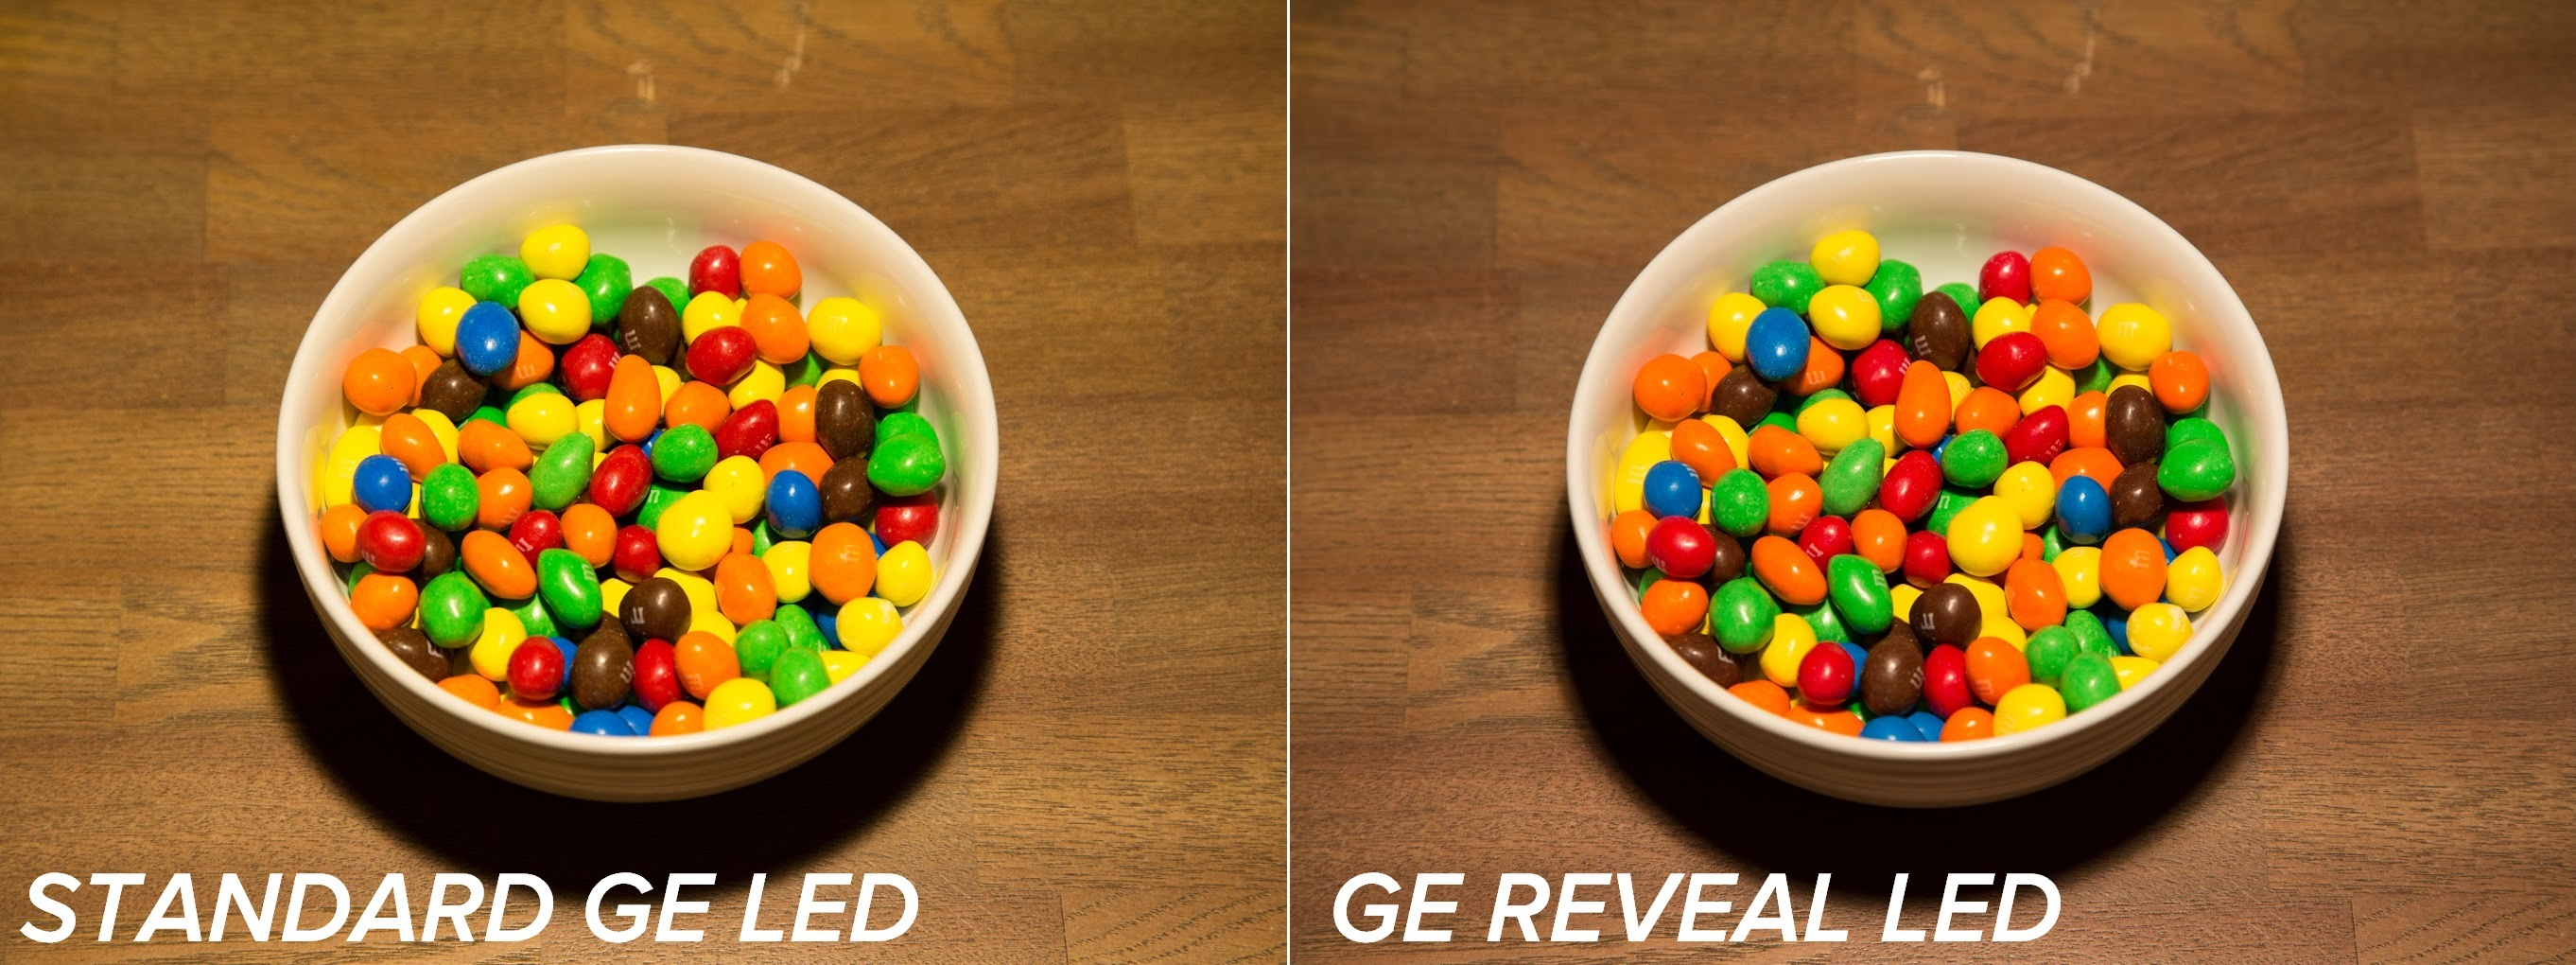 ge-and-ge-reveal-and-incandescent-led-cri-shots.jpg